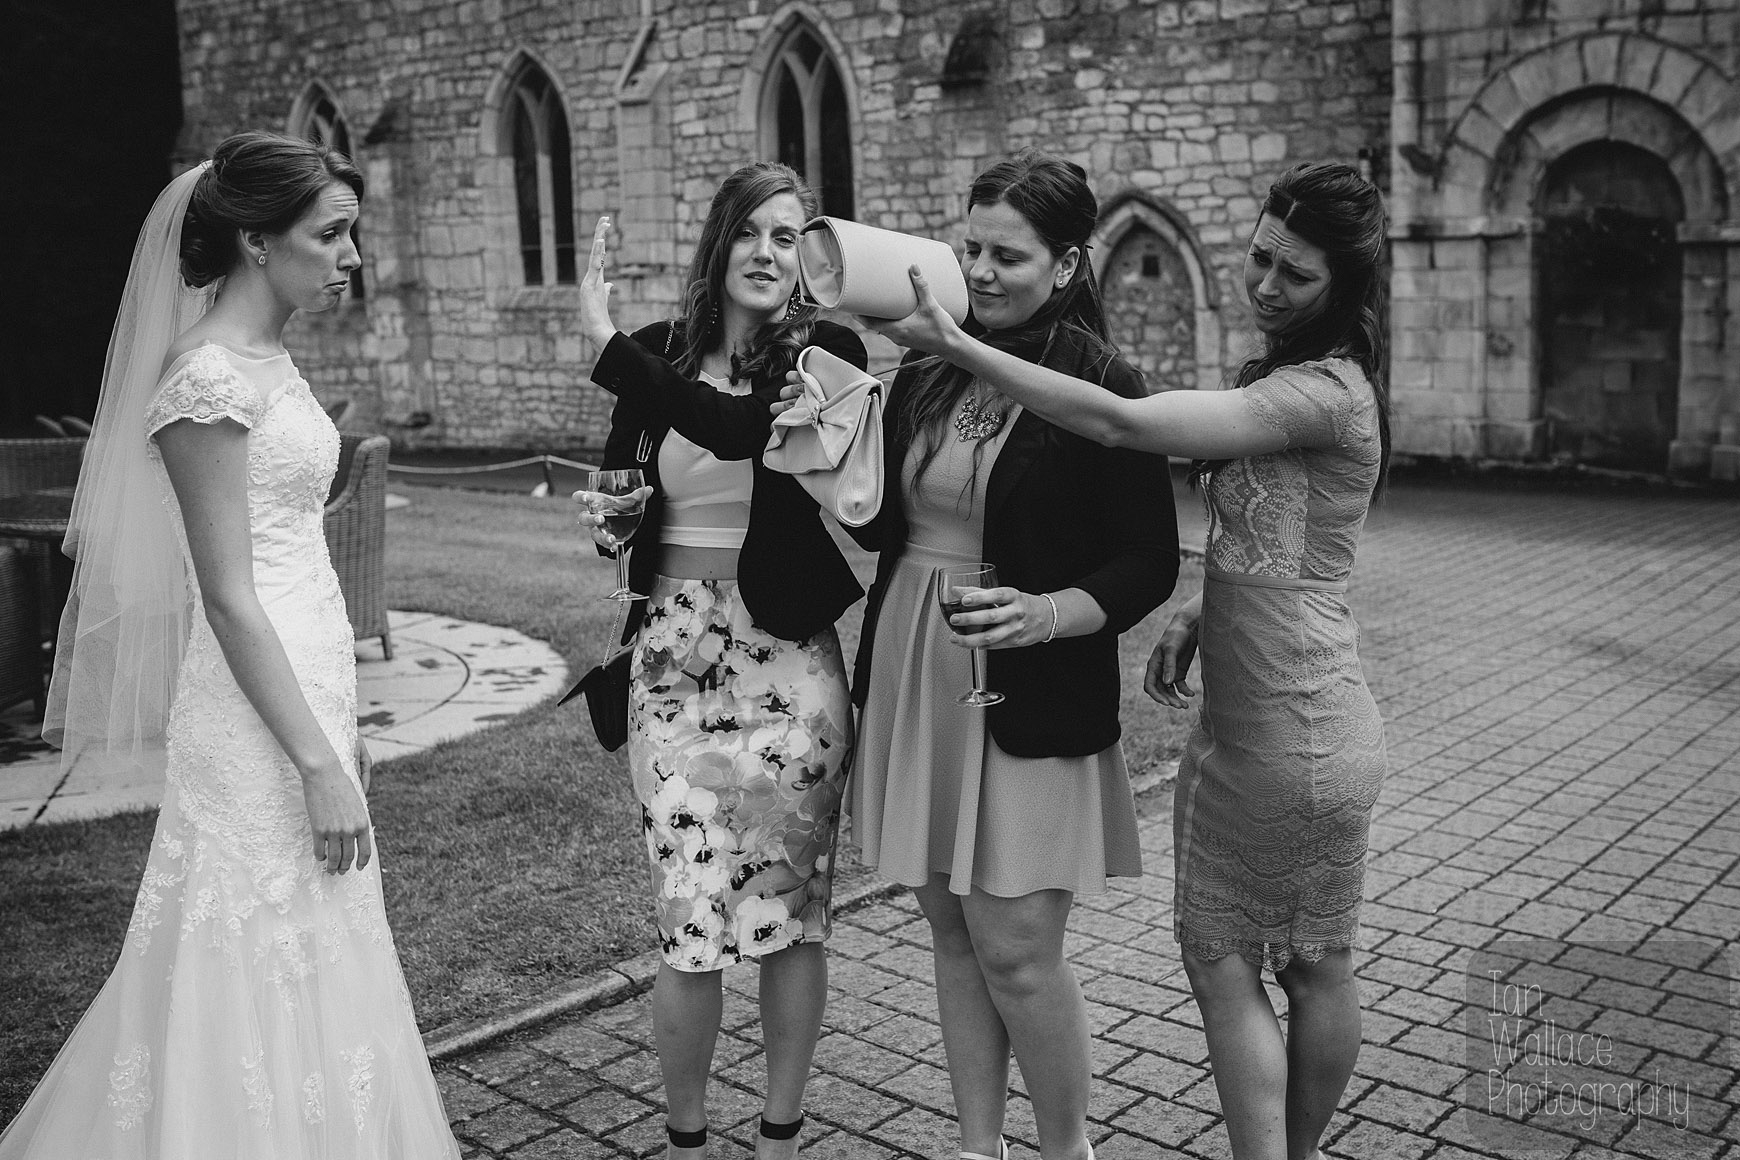 Brides friends disown her now that she's married. Sad times.